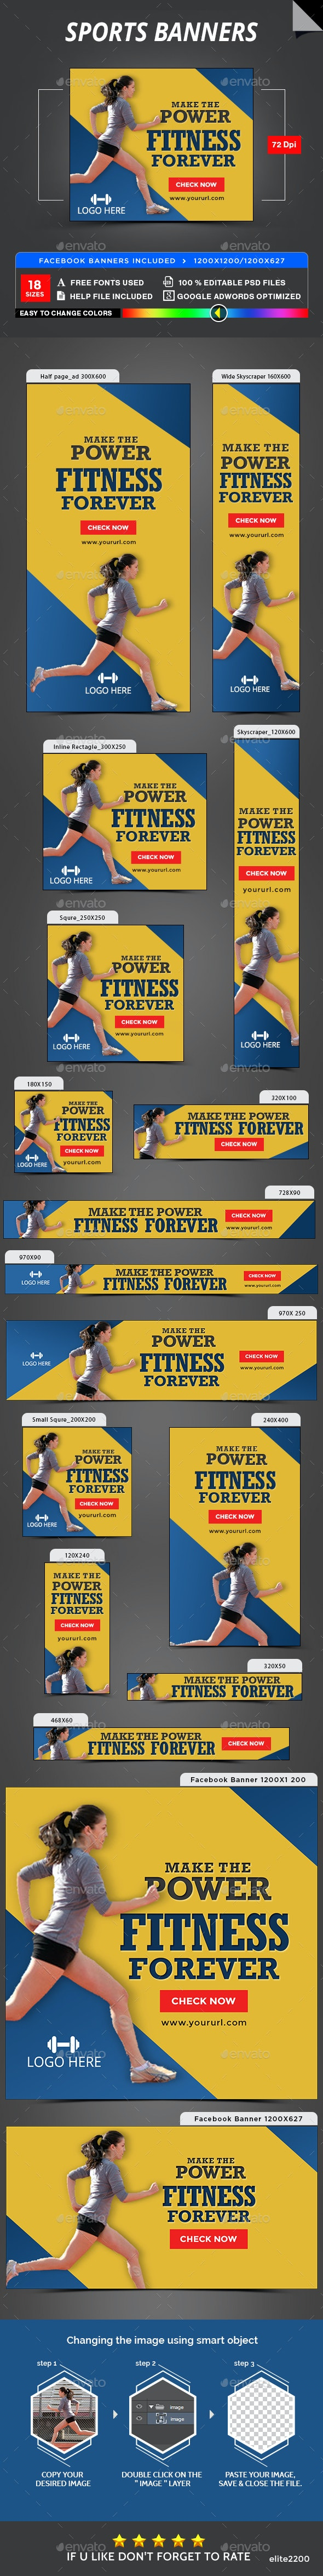 Sports Banners - Banners & Ads Web Elements